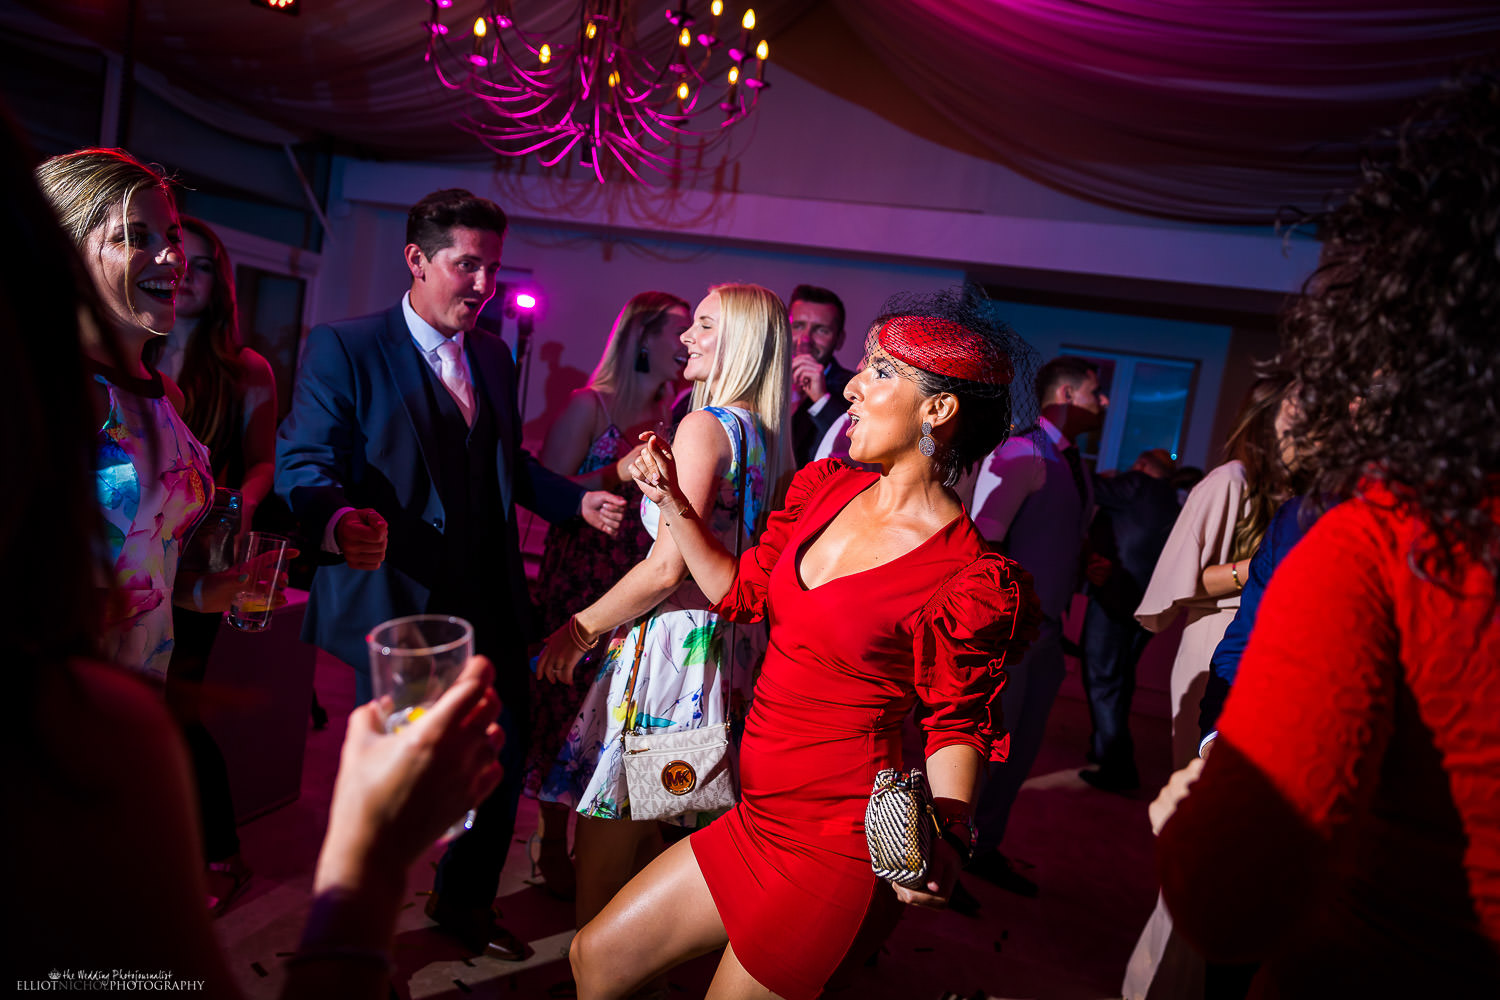 Lady in red on the dance floor with the other wedding guests partying during the reception party. Photo by Elliot Nichol Photography.